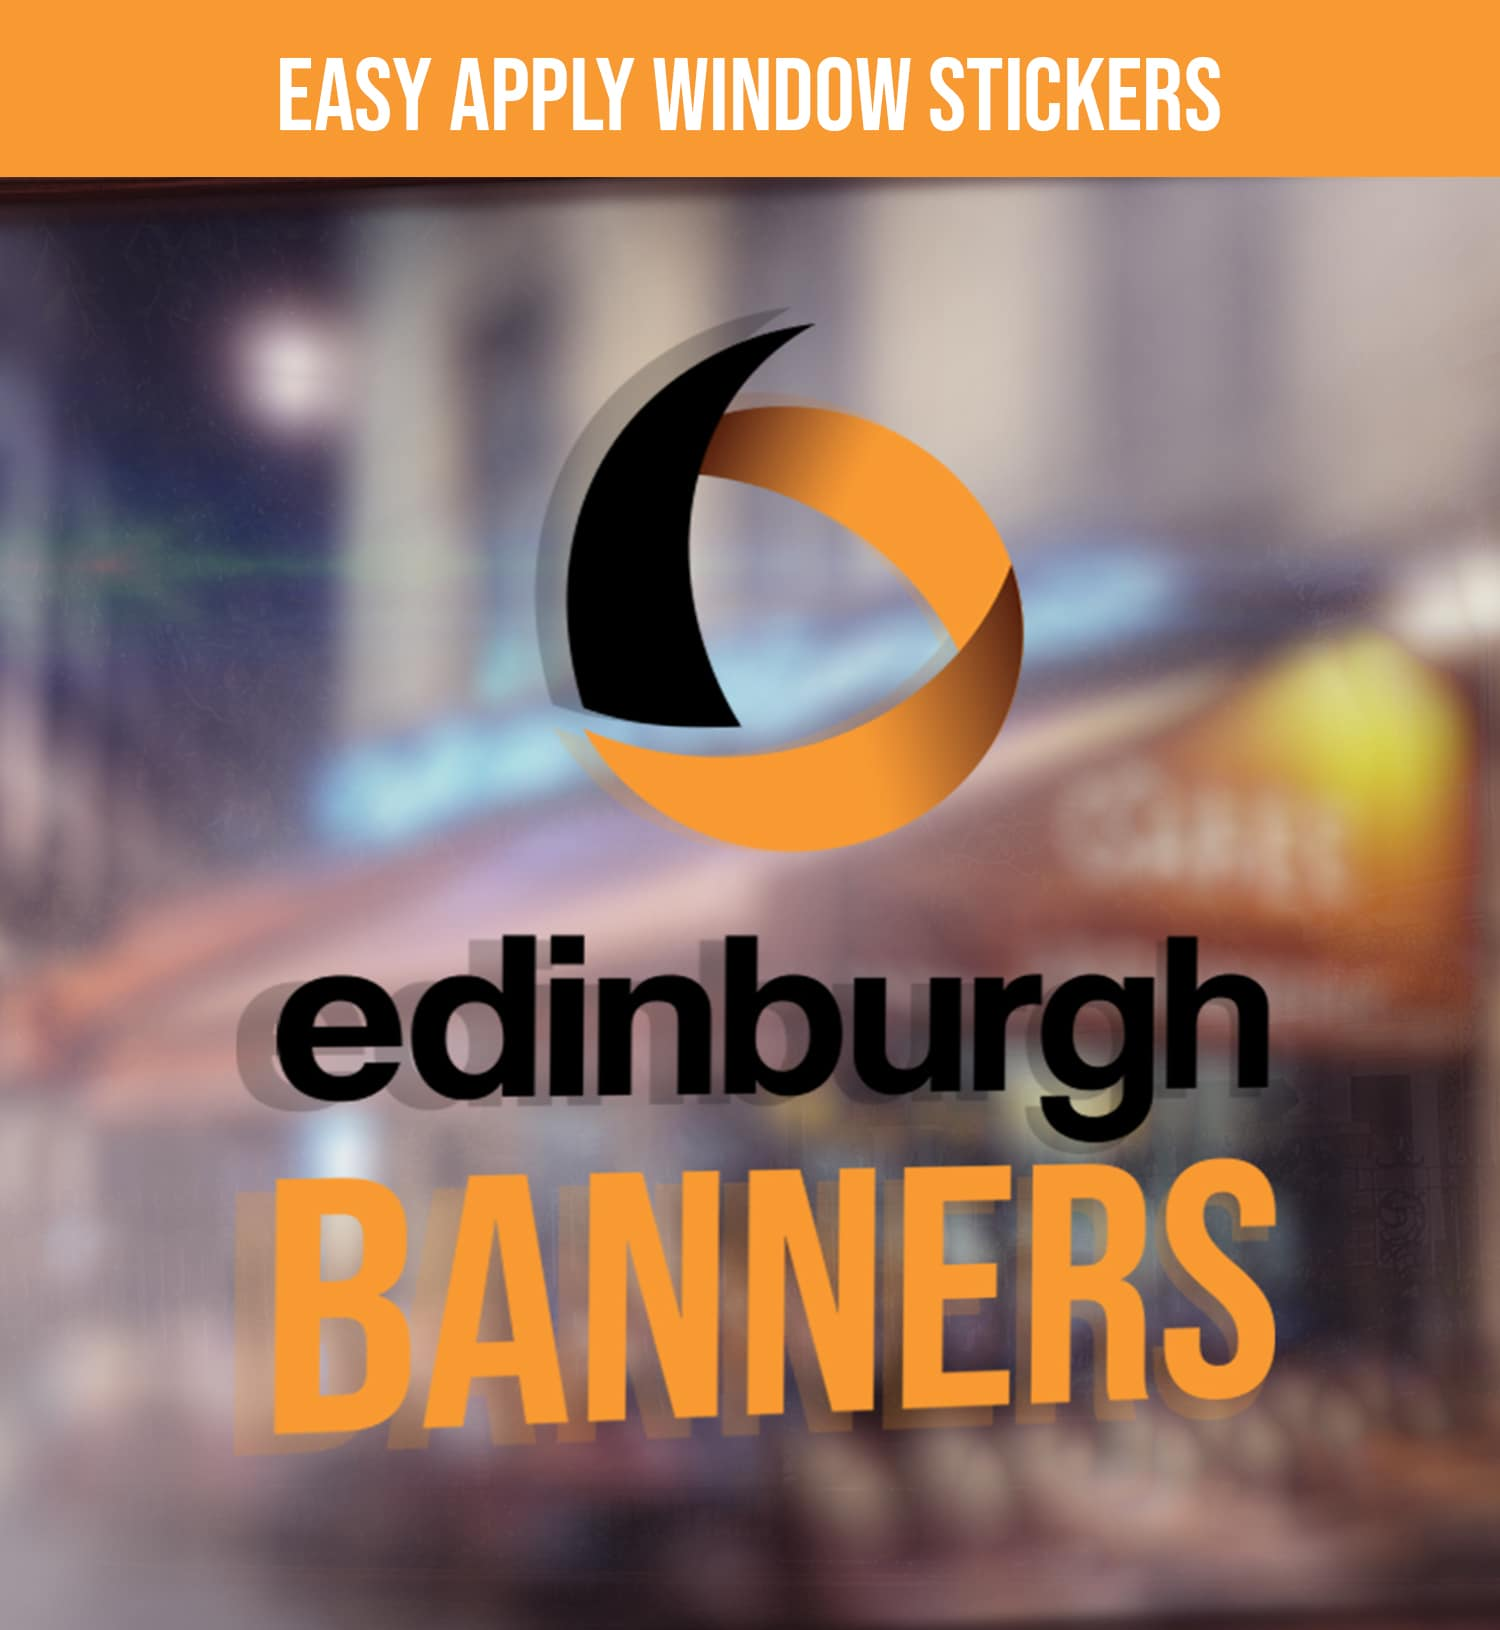 Edinburgh Banners Window Stickers